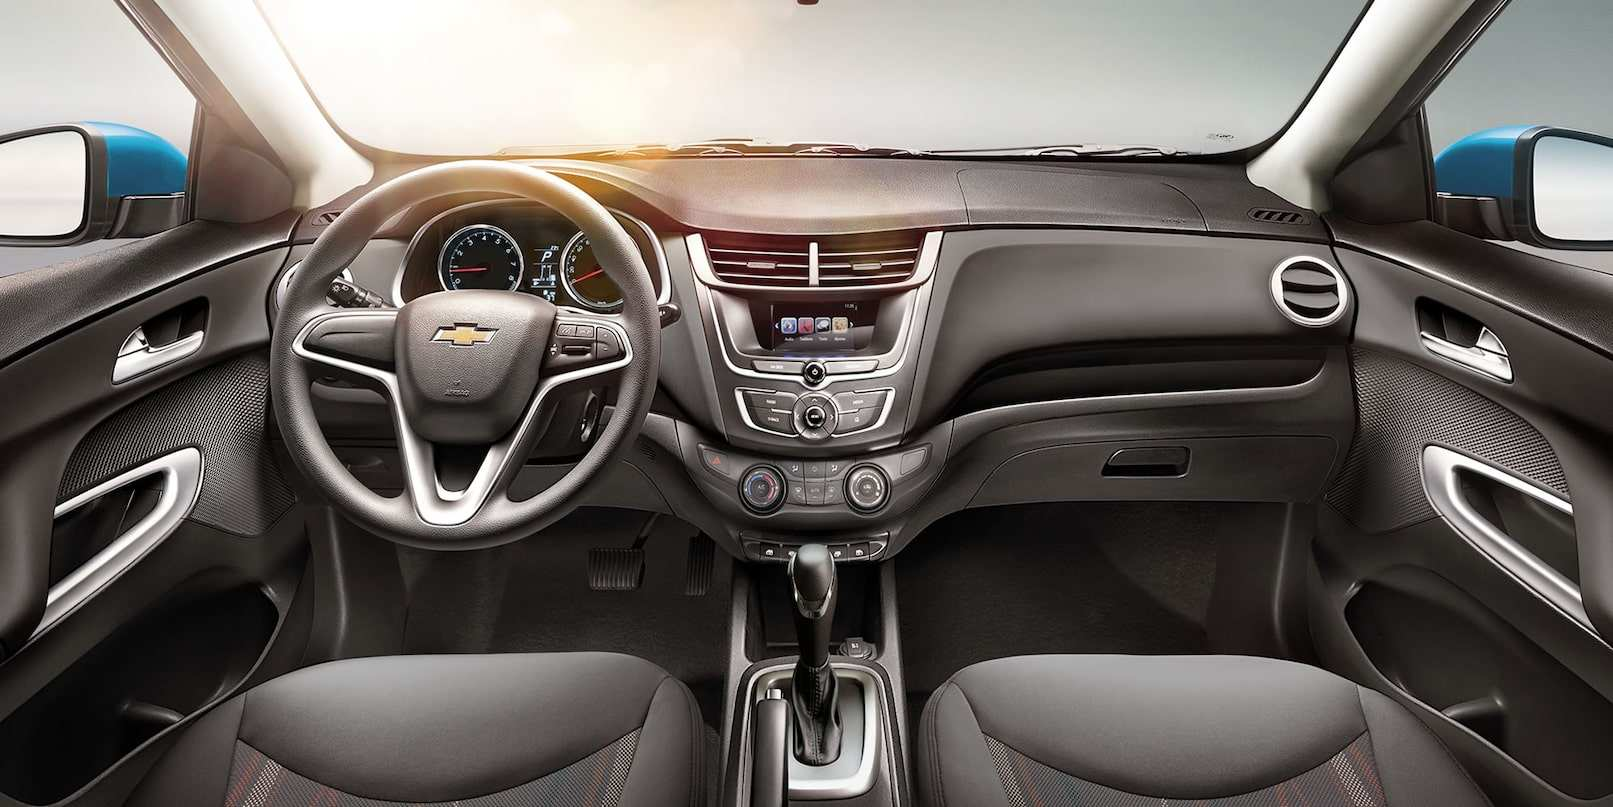 58 Best 2019 Chevrolet Aveo Review And Release Date